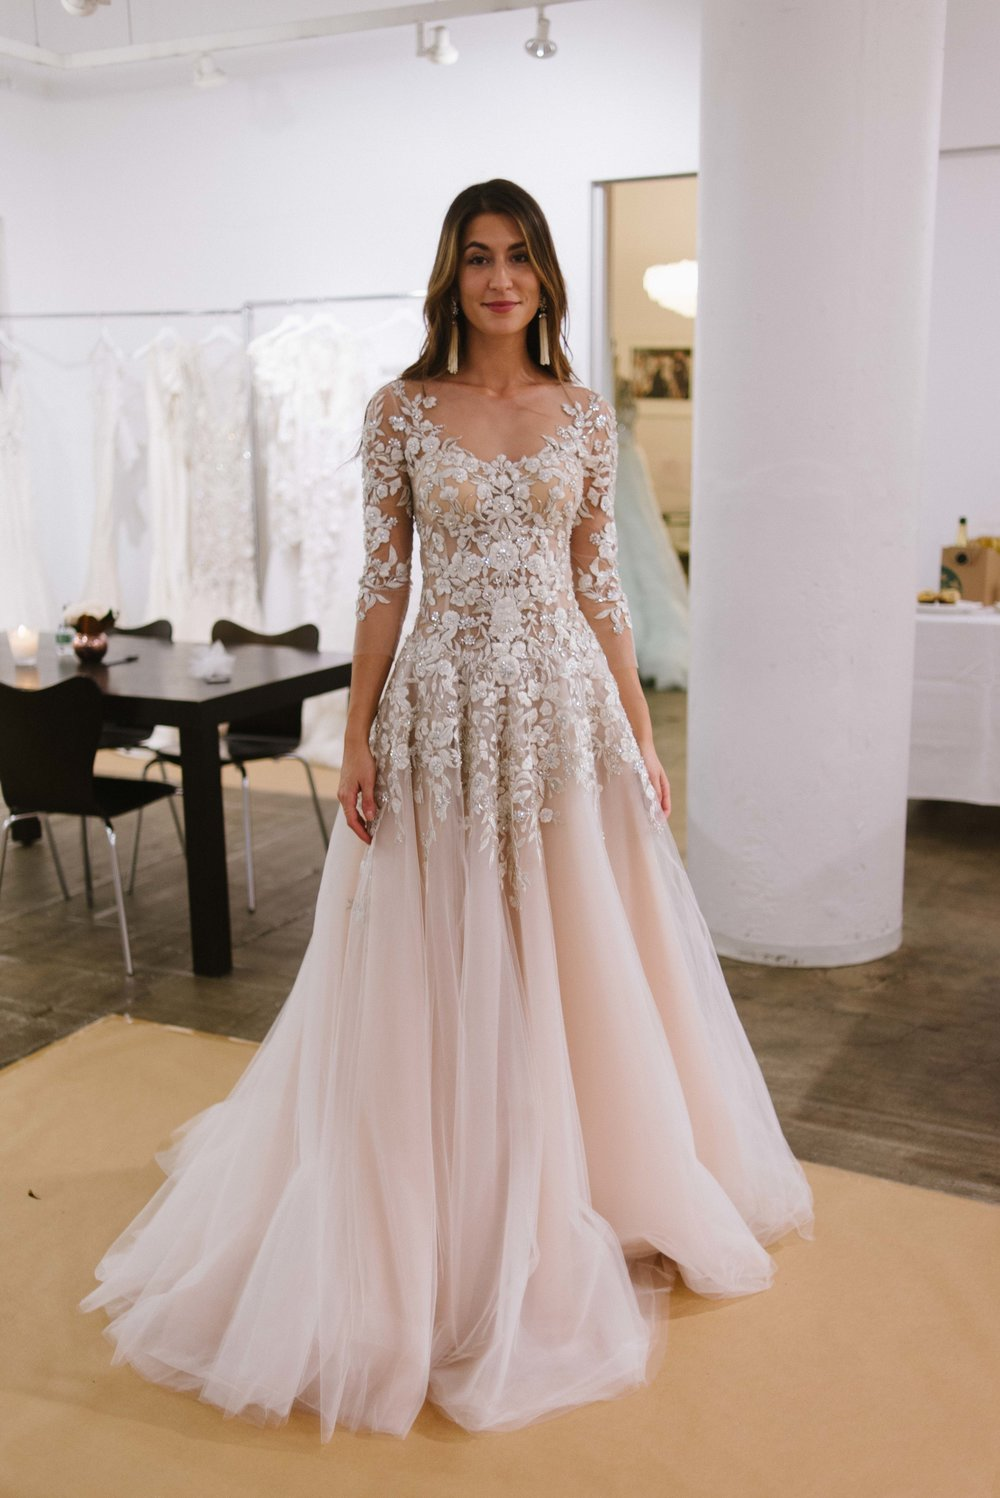 New York Bridal Fashion Week 2016 | Marchesa | Little White Dress Bridal Shop in Denver